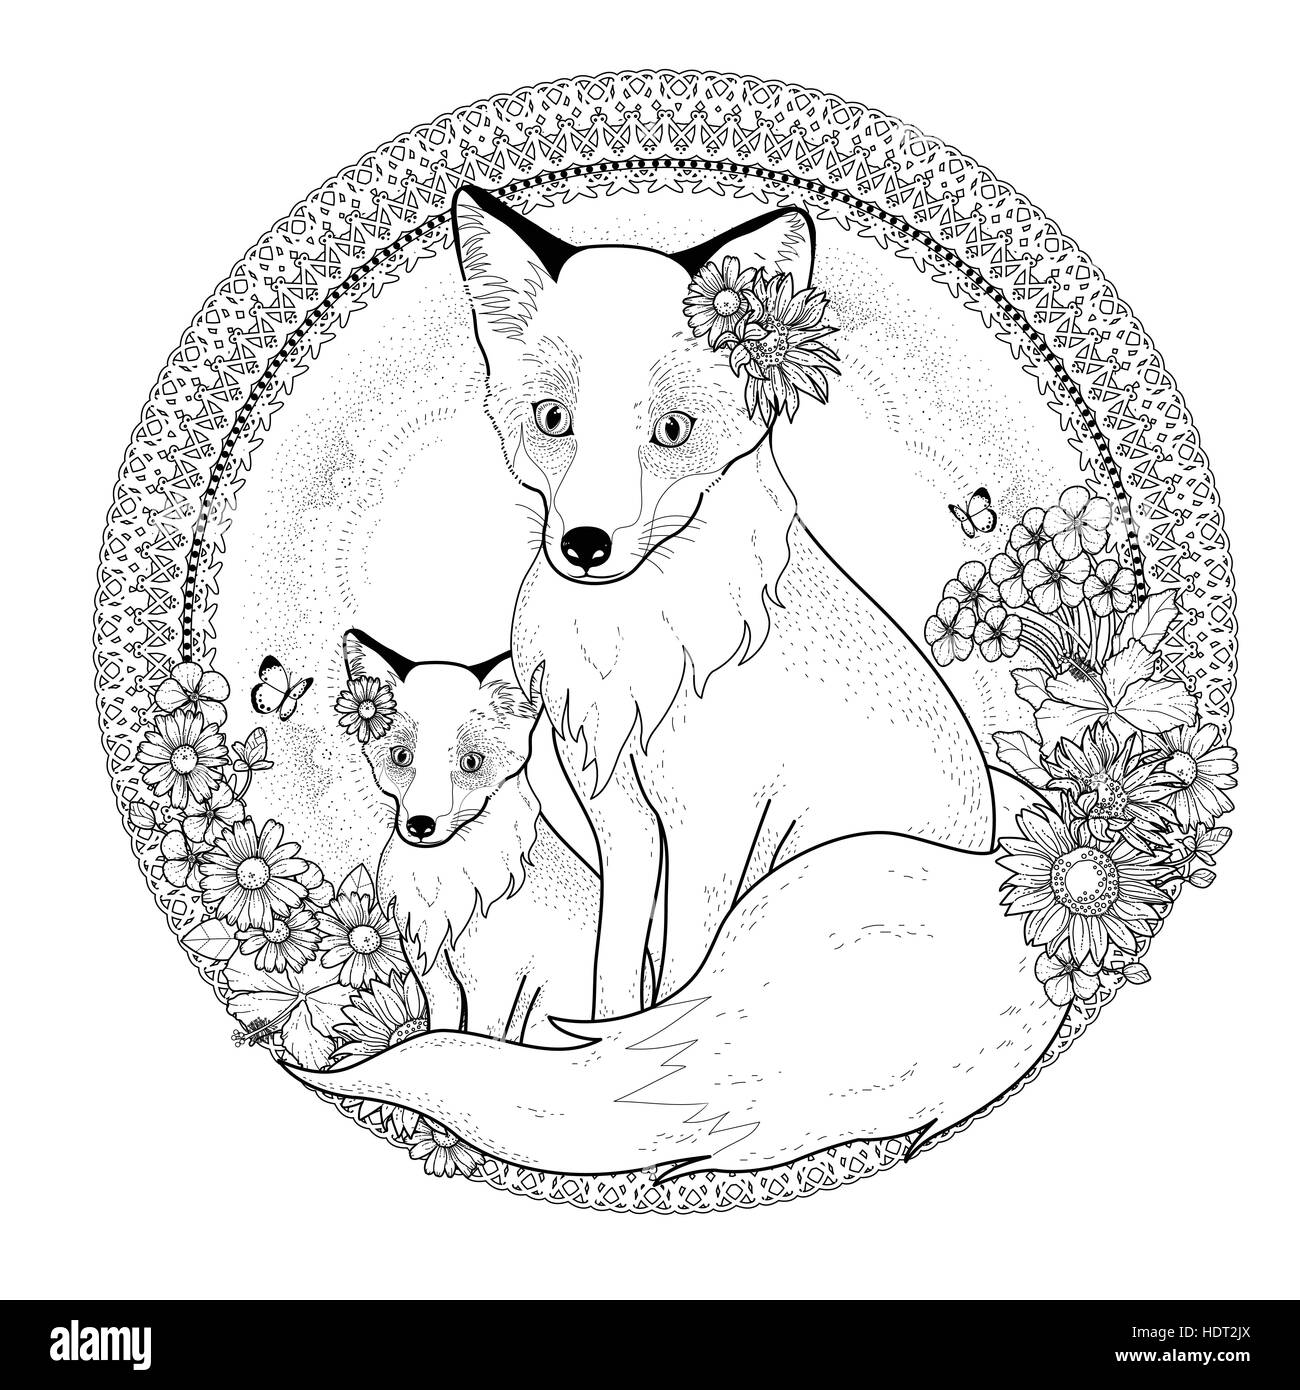 Adorable Fox Coloring Page With Floral Elements In Exquisite Line